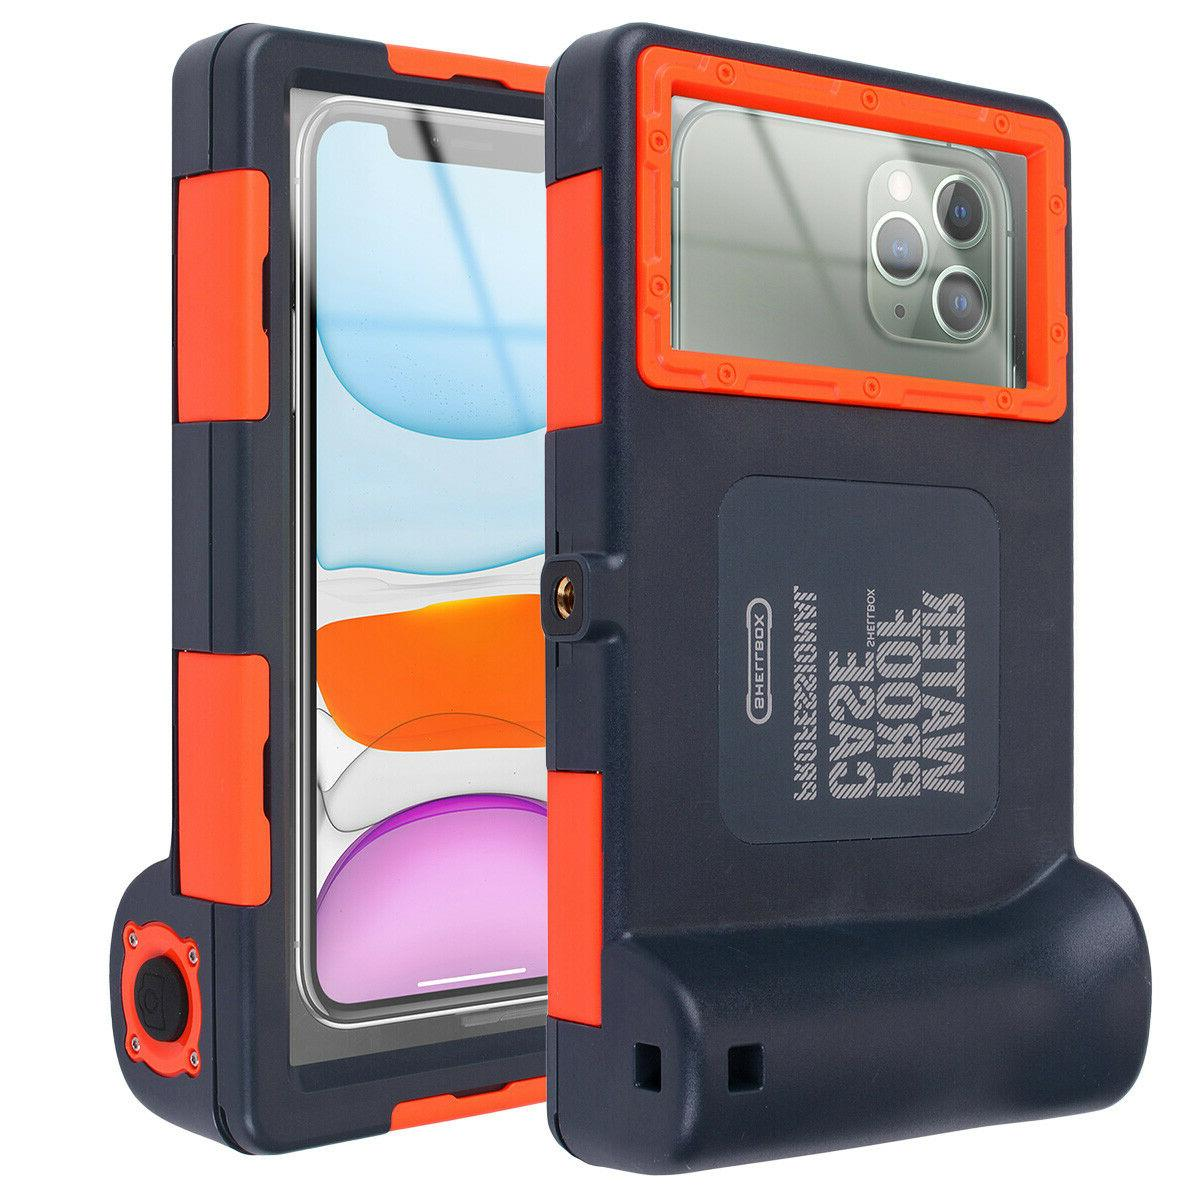 Universal Waterproof Case Underwater Camera iPhone 11